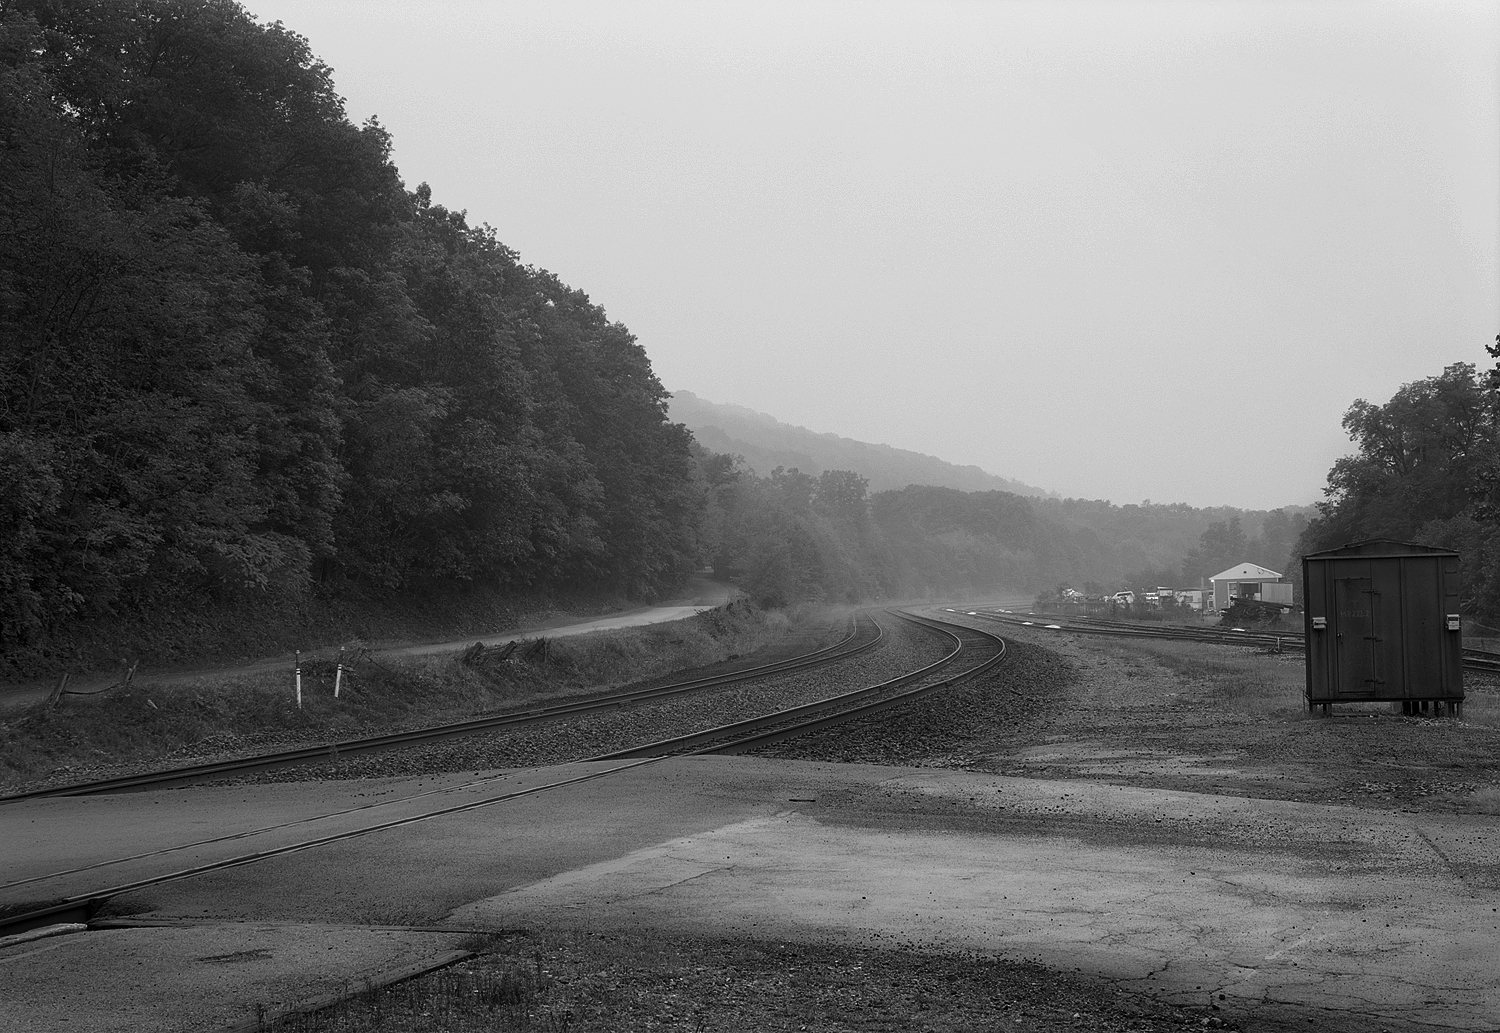 Just West of the of the former PRR Tyrone train station and current Amshack the Mainline made a sharp turn South heading down the Valley to the well know City of Altoona. This simple study looks across Spruce St and the Mainline at dusk in September of 2008. To the right is the yard trackage and connection to the Bald Eagle Branch, a line that provided a alternative route to the Mainline and access to the Upper Susquehanna Valley.